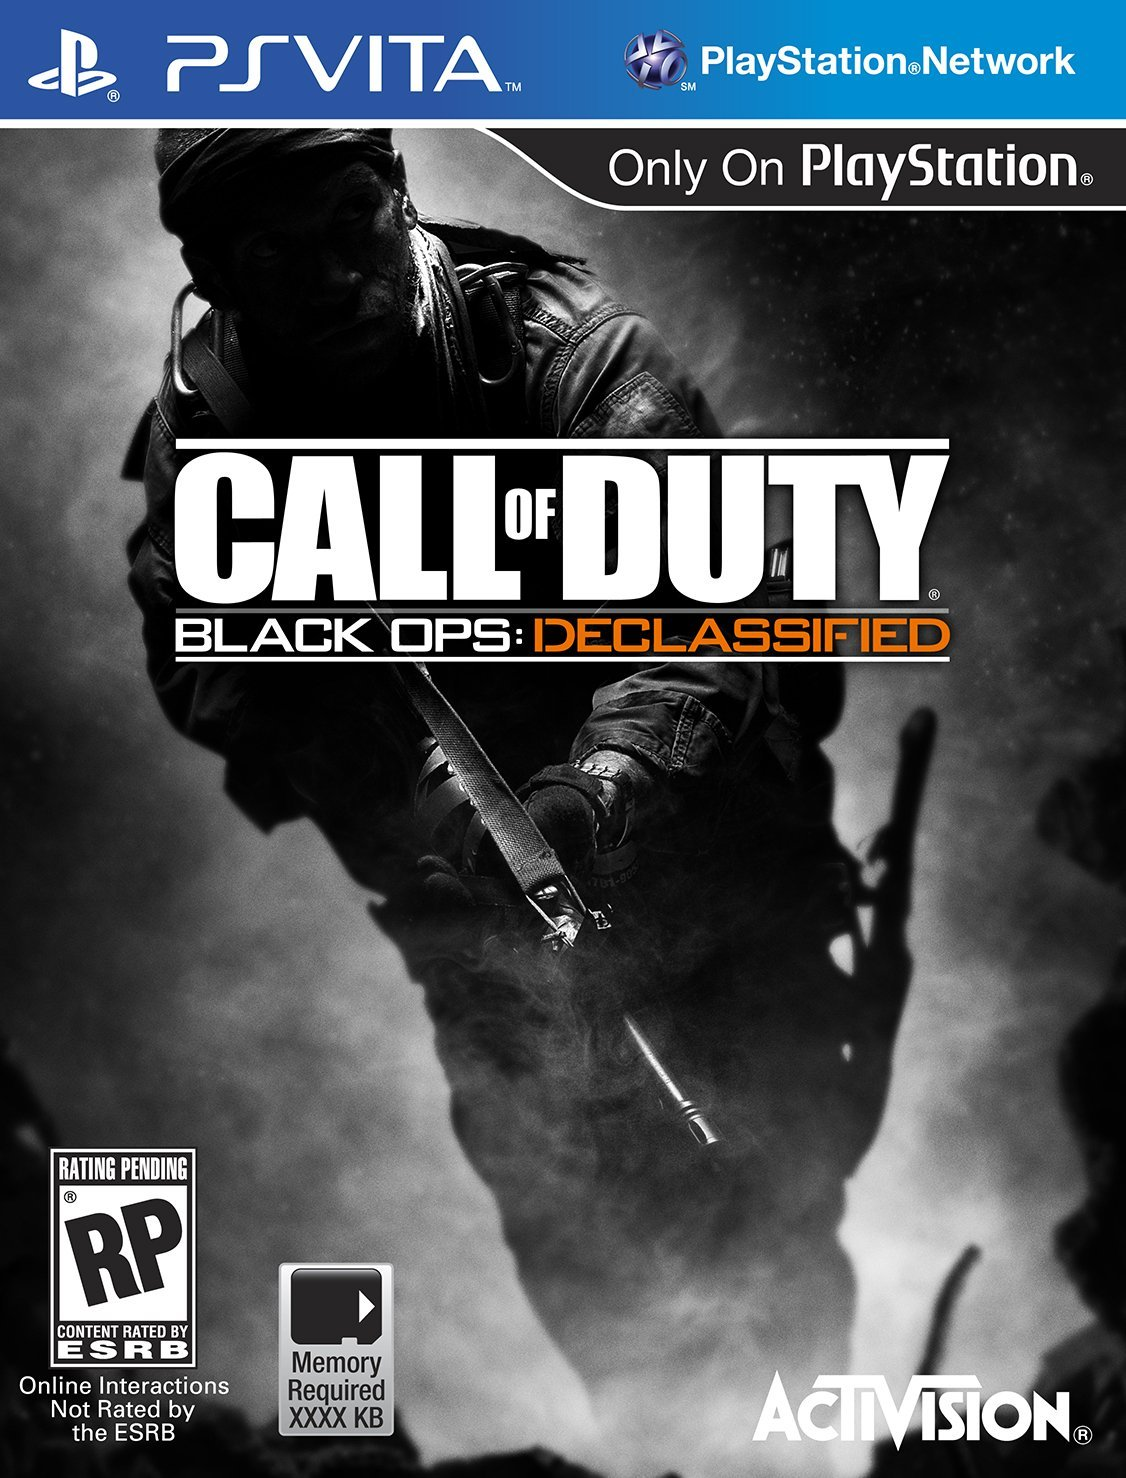 gamefreaksnz:  Call of Duty Vita details, box art leaked by Walmart  A listing on Wal-mart has unveiled initial details on upcoming Vita title Call of Duty Black Ops: Declassified.